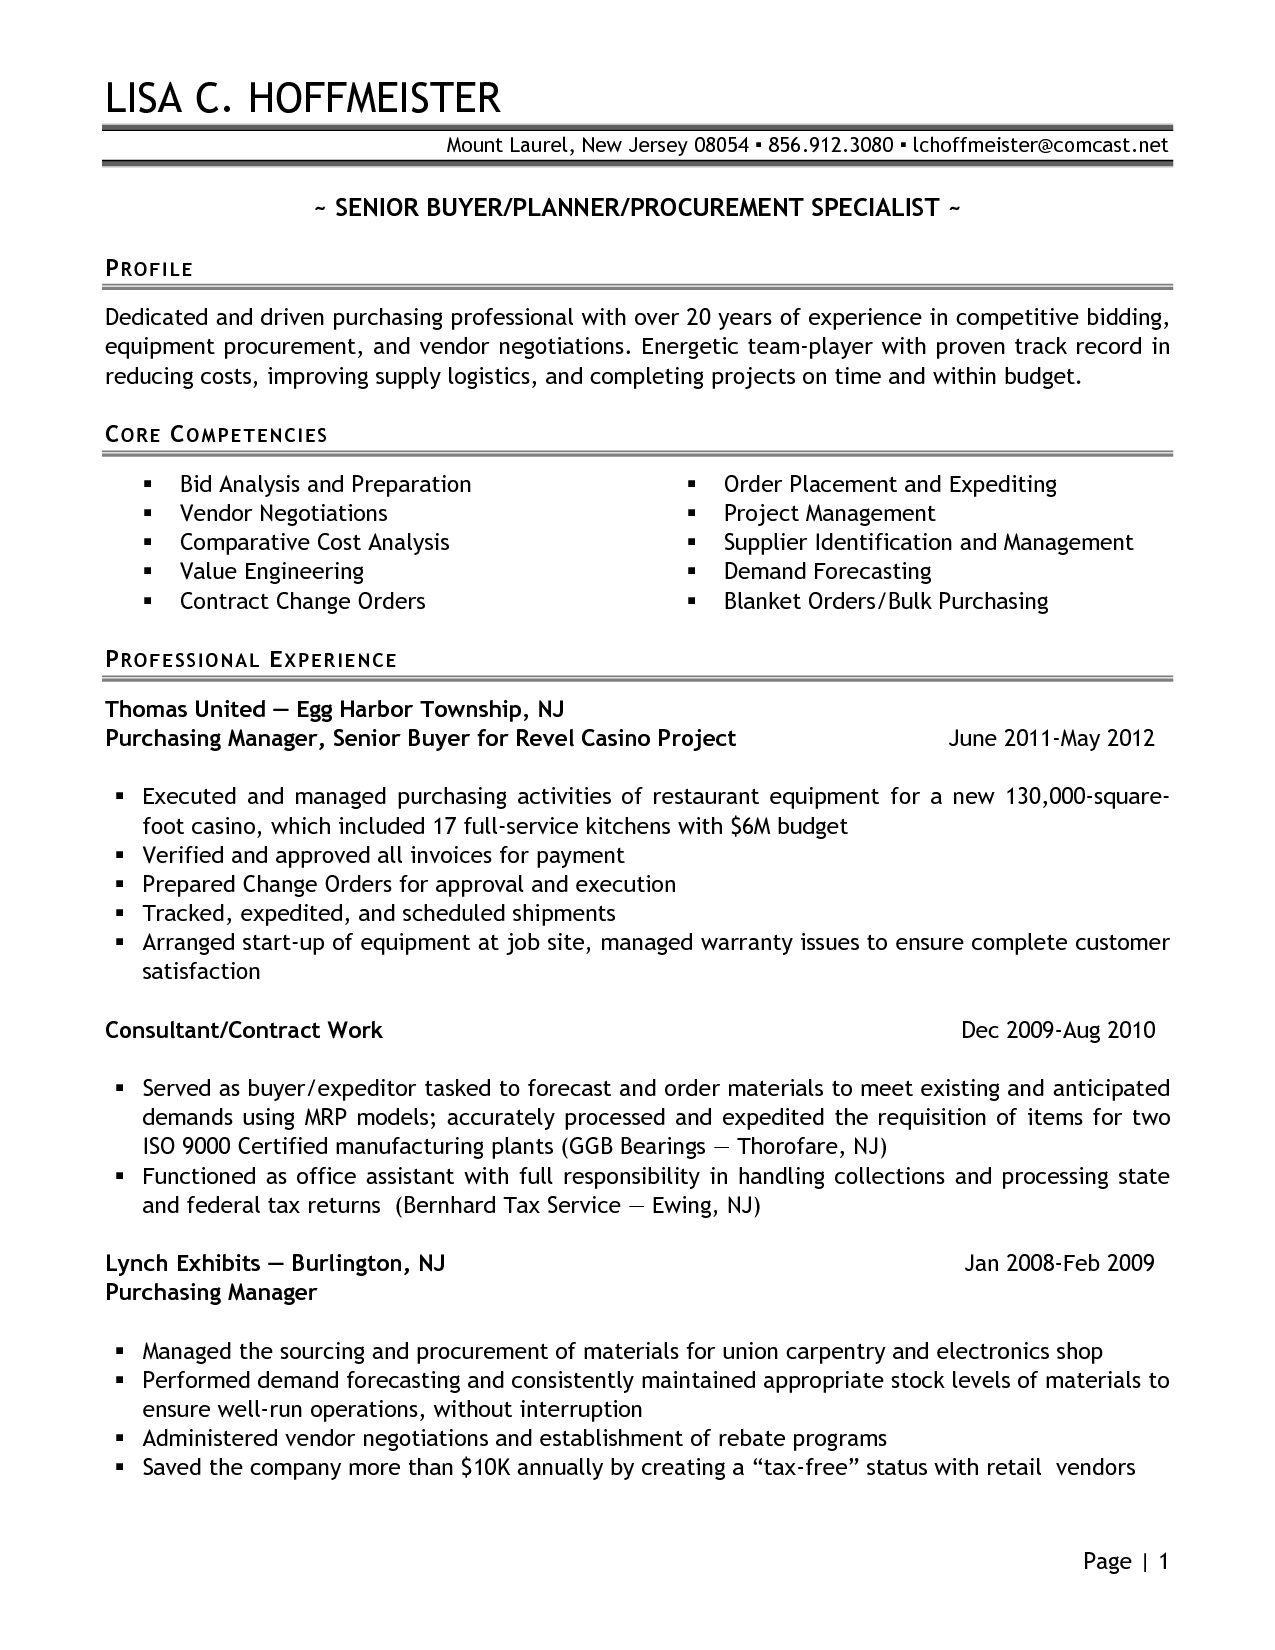 Resume Format For Purchase Manager Senior Logistic Management Resume Senior Buyer